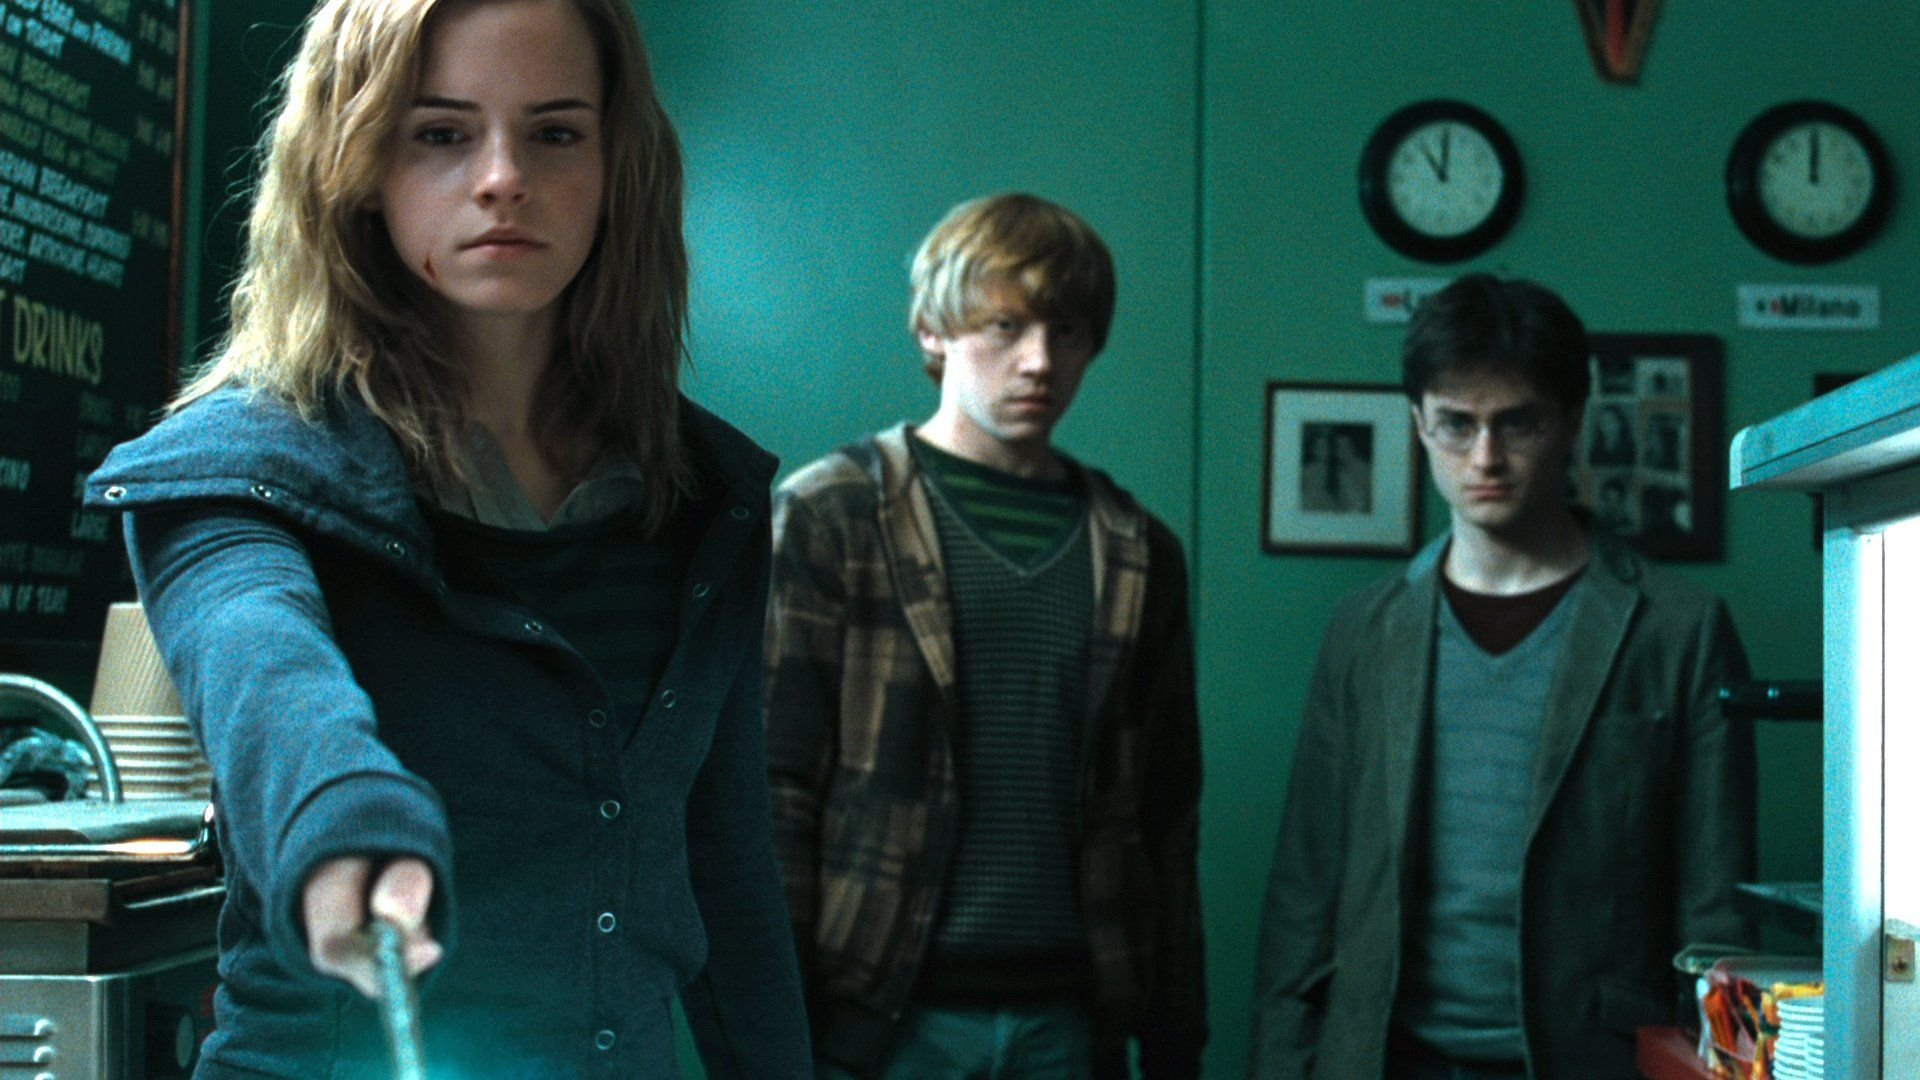 Image Result For Harry Potter Movie Harry Potter Sequel Harry Potter Fantastic Beasts Harry Potter Universal